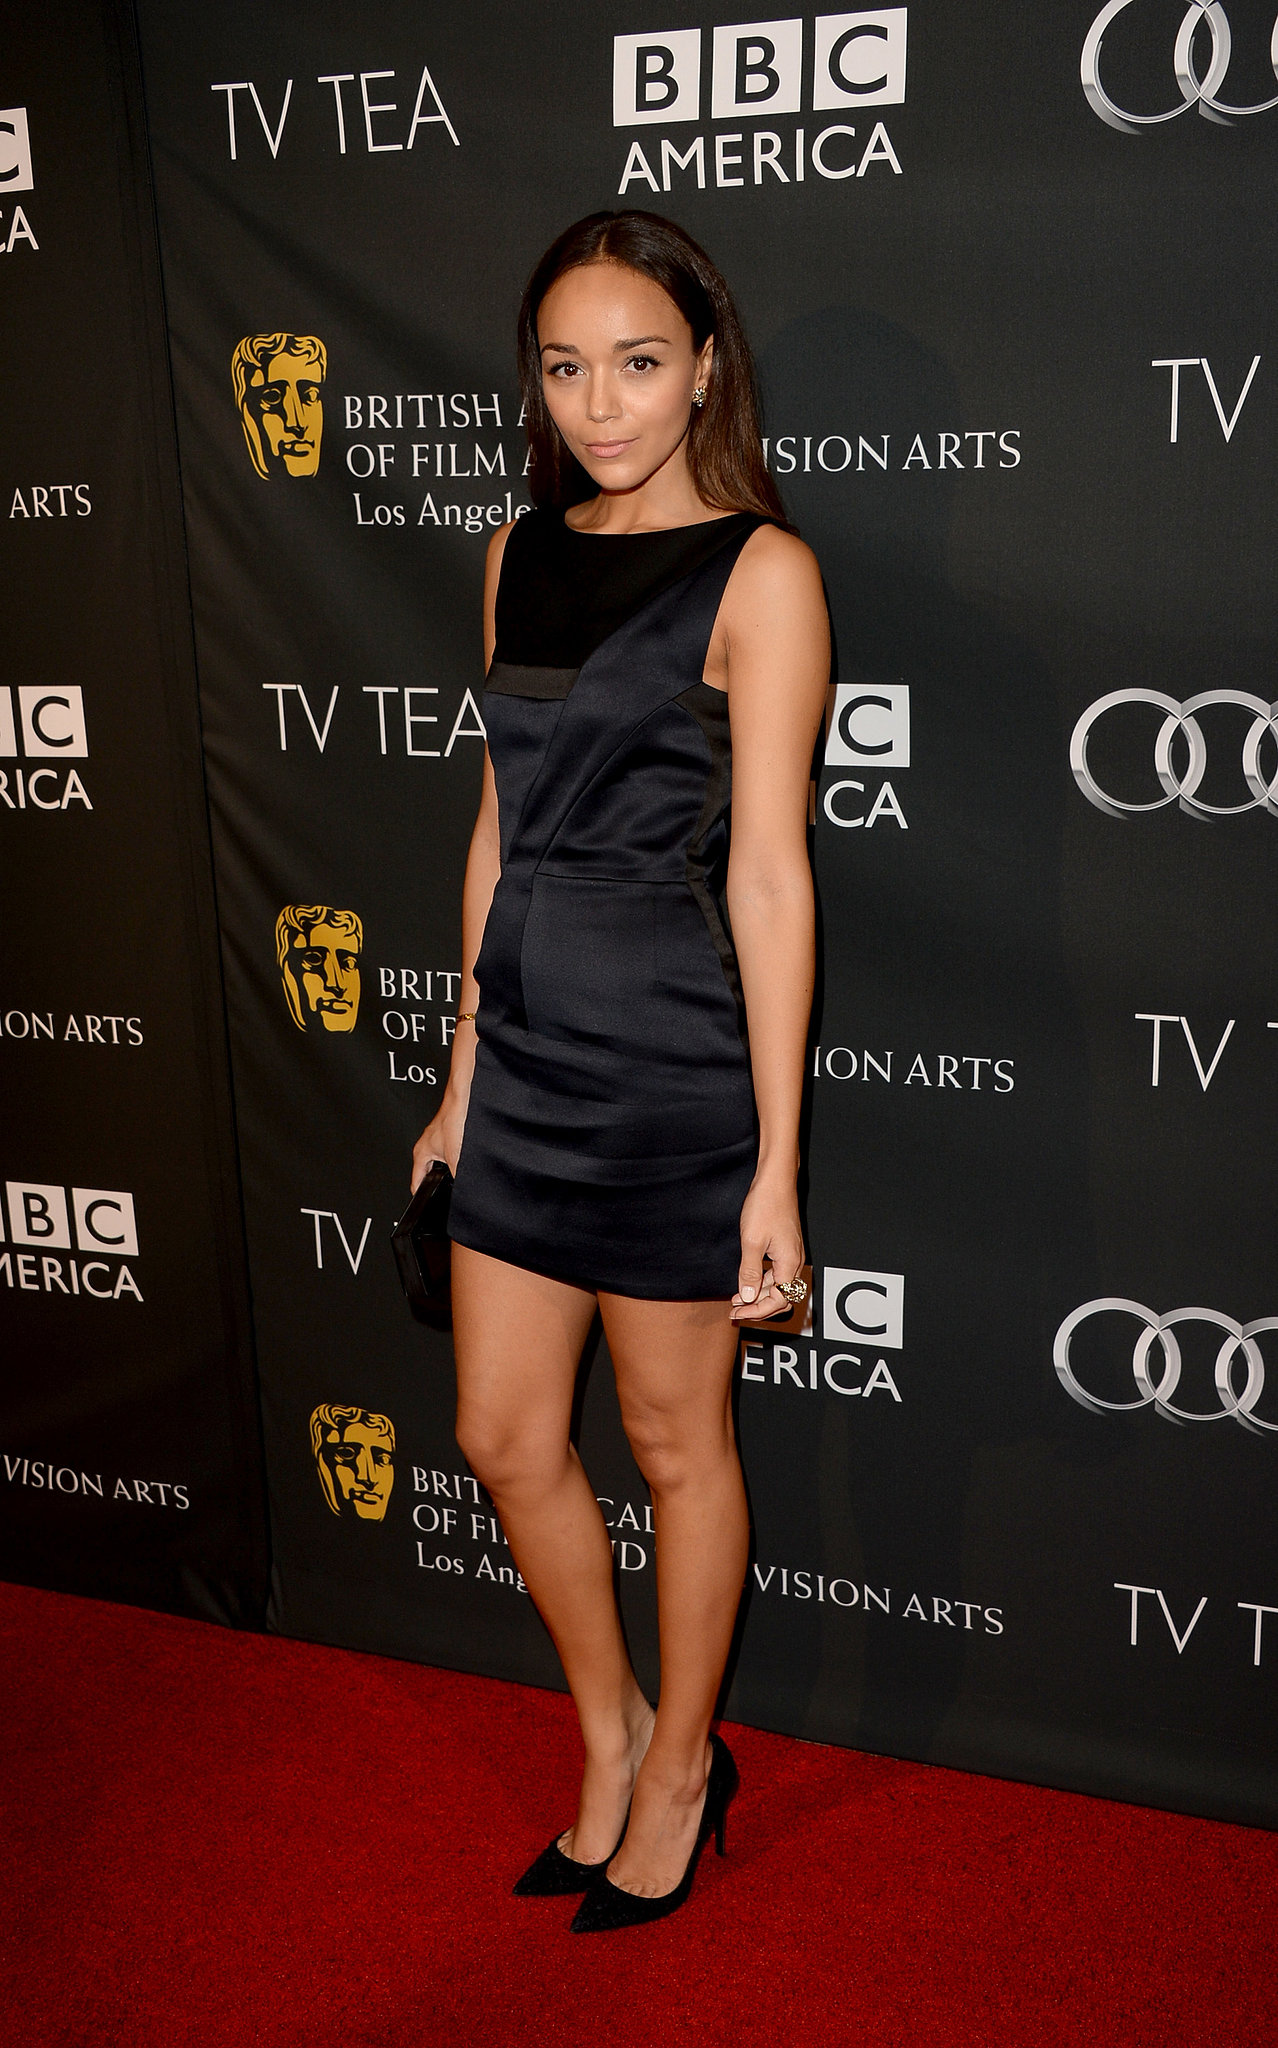 Ashley Madekwe kept it classic in a little black dress and pointy pumps at the BAFTA LA TV Tea Party.